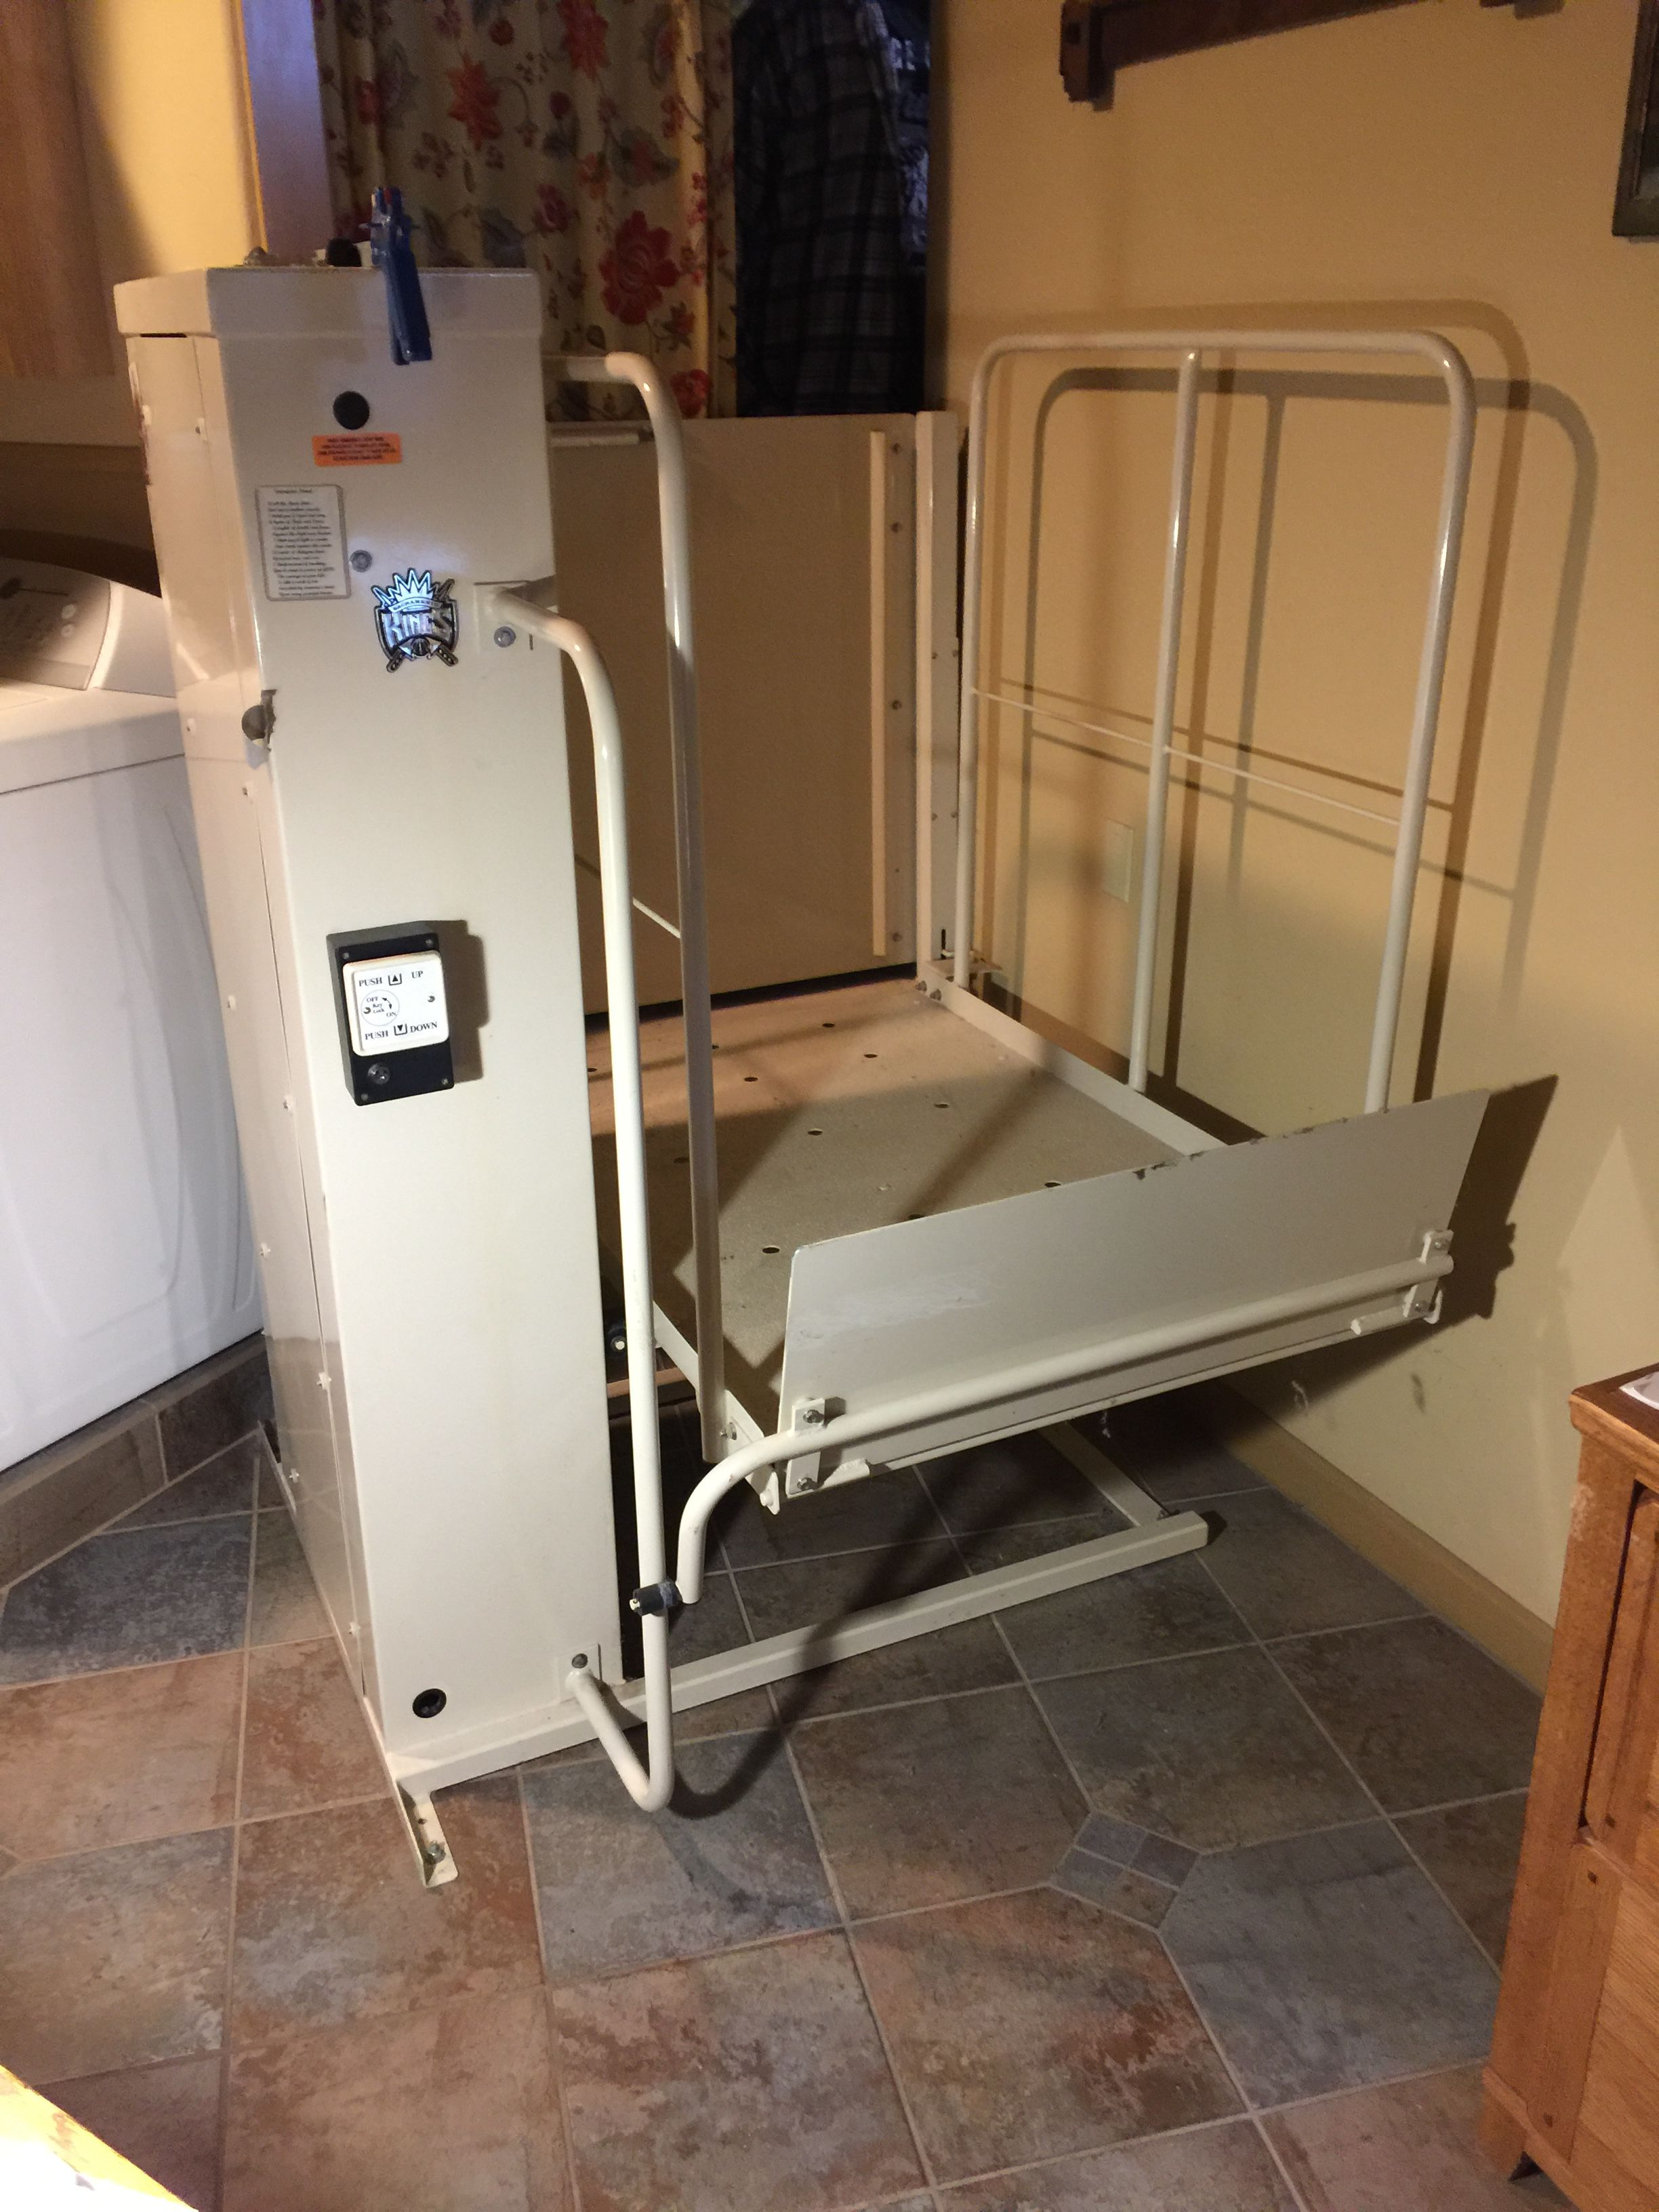 products lifemed life mini porch vertical serenity ca care lift product platform health style